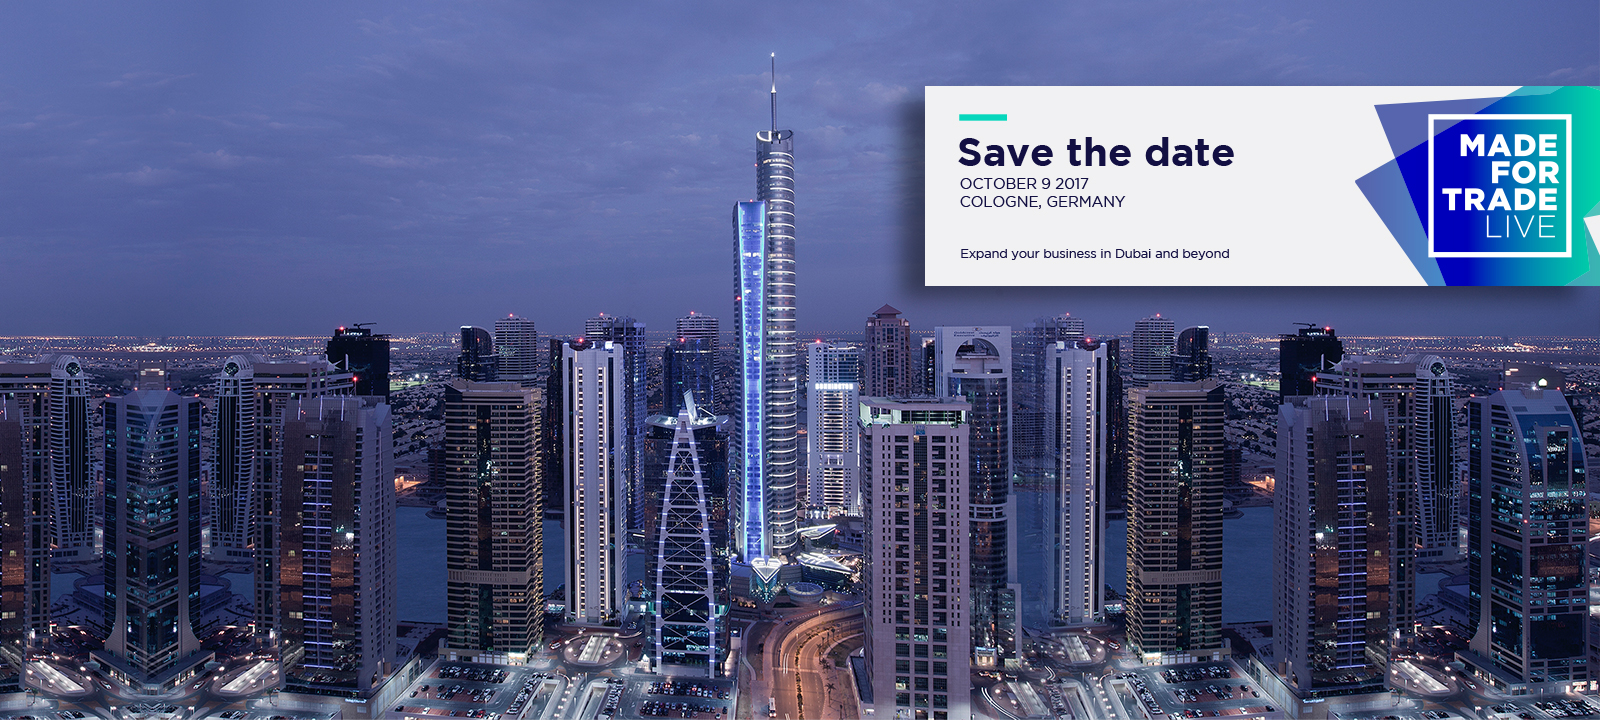 Expand Your business in Dubai and beyond!